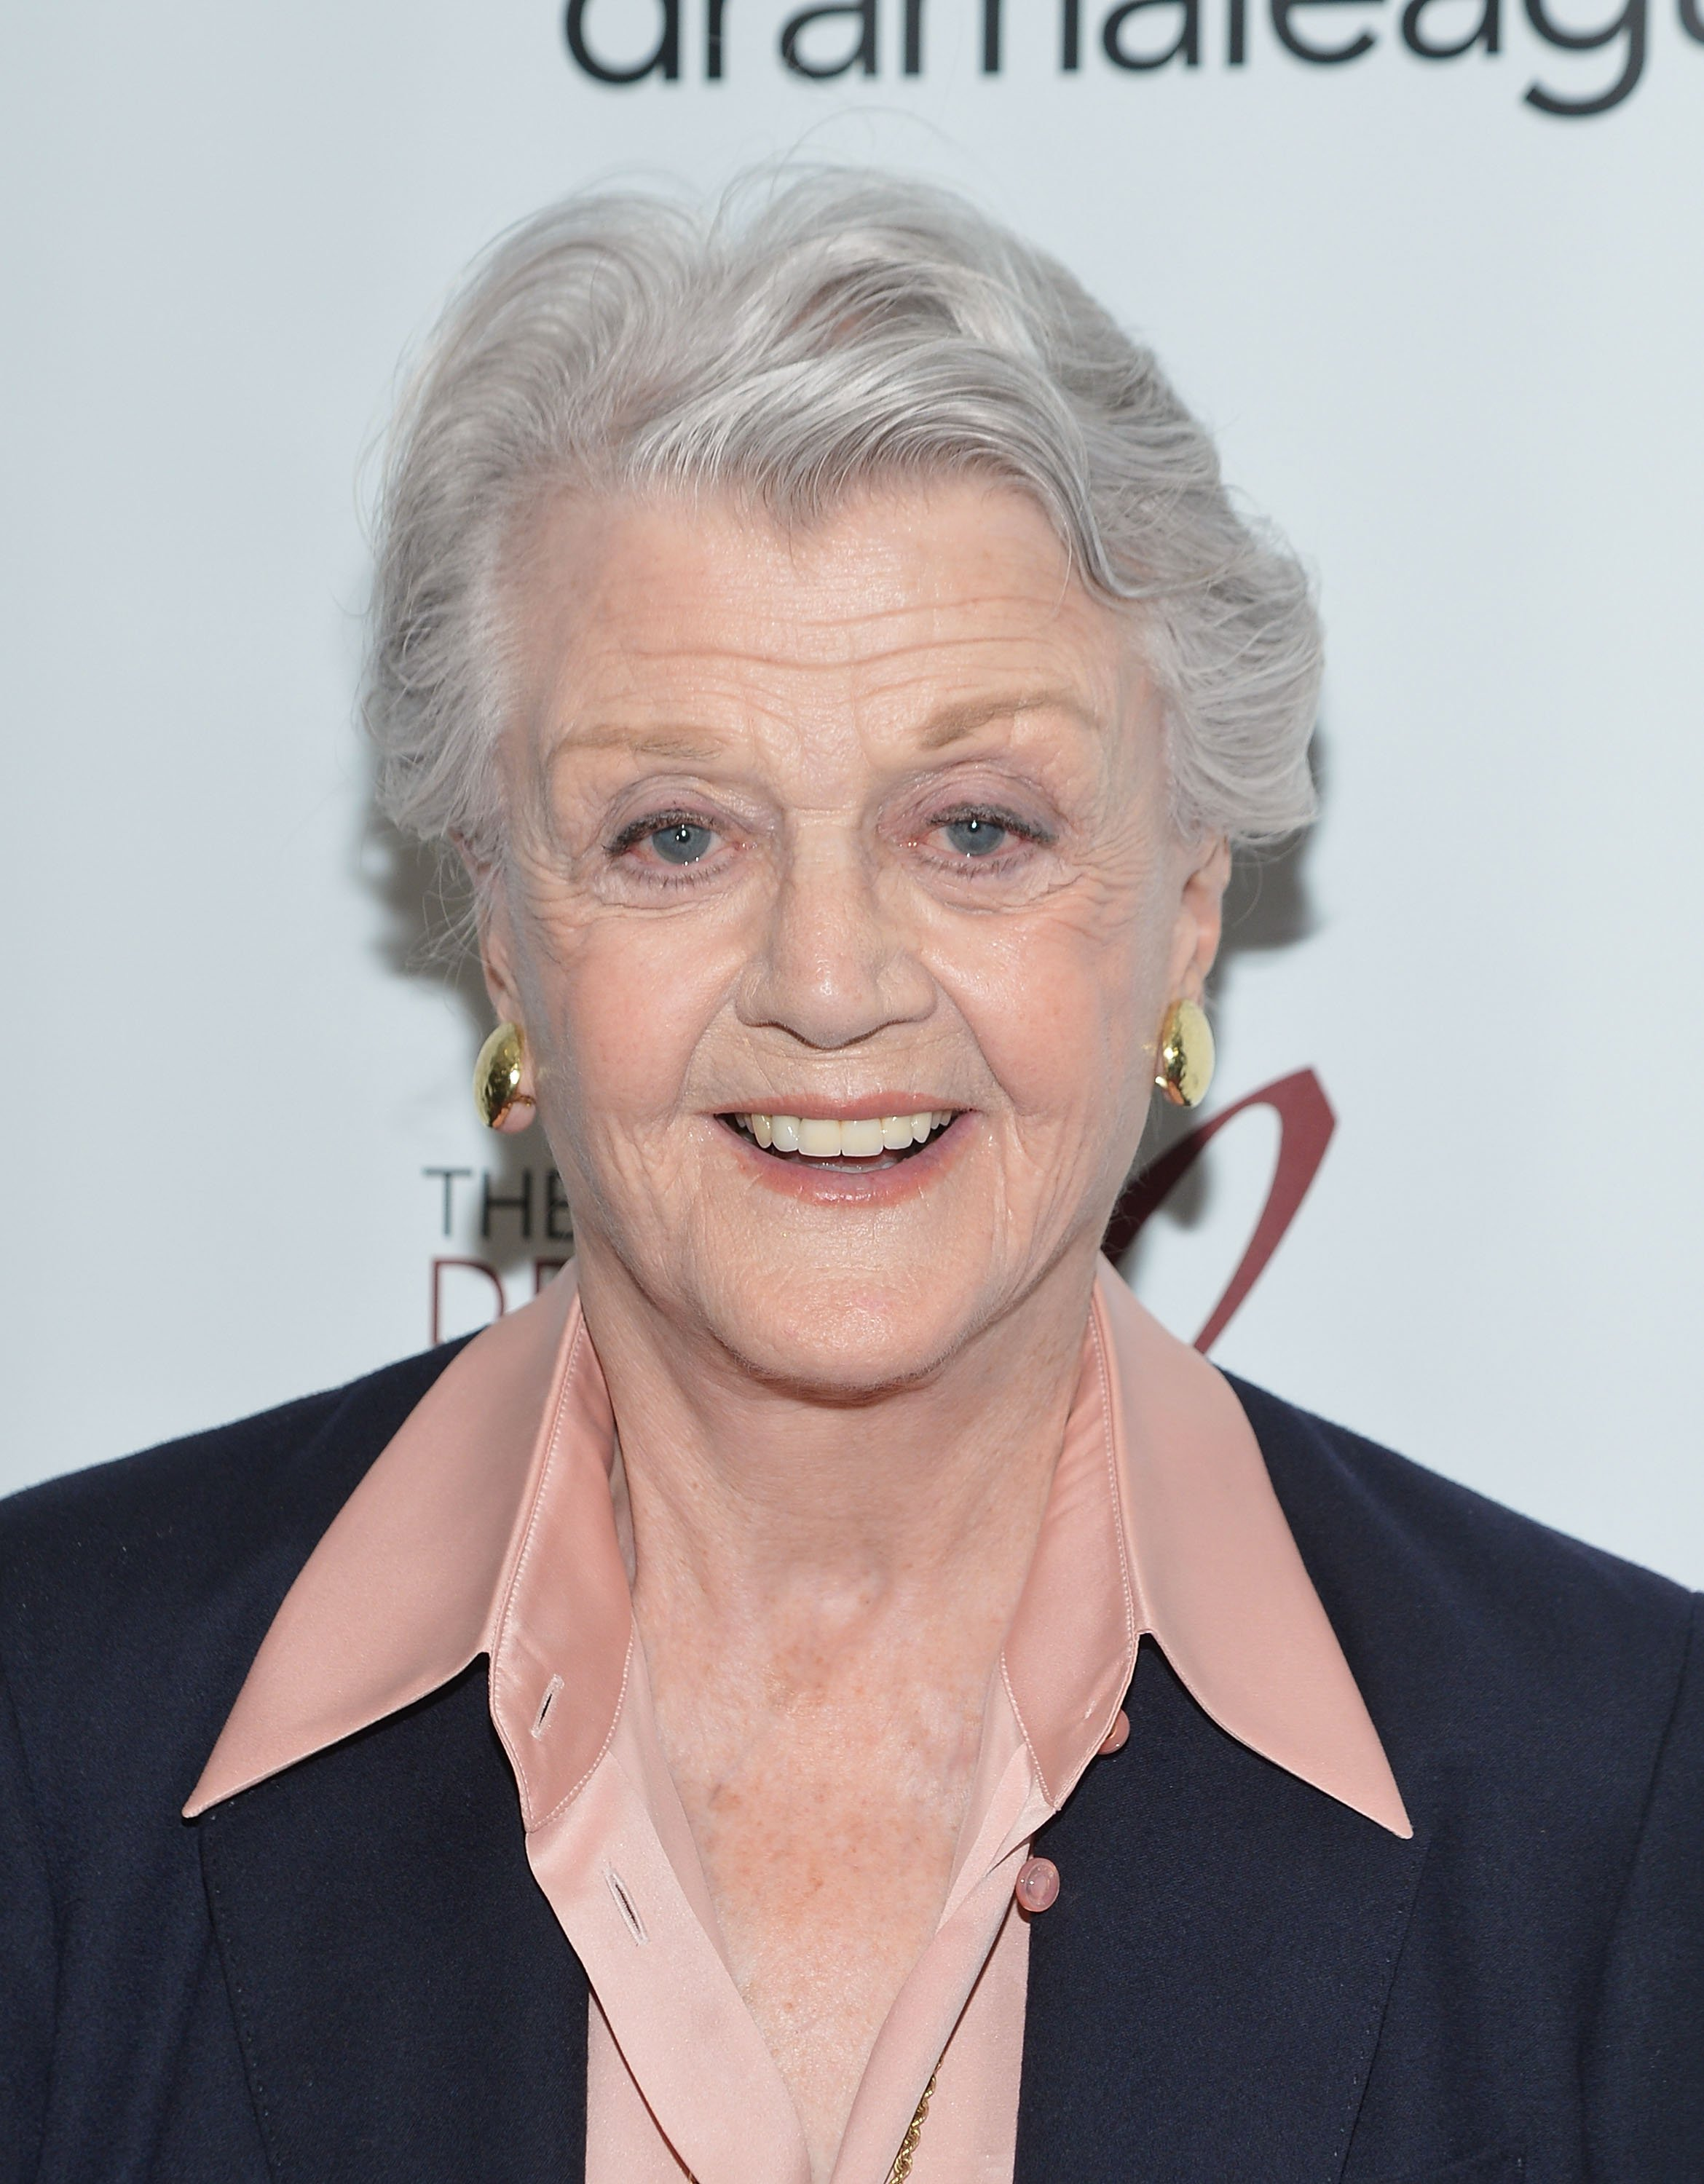 Angela Lansbury on May 18, 2012 in New York City | Source: Getty Images/Global Images Ukraine